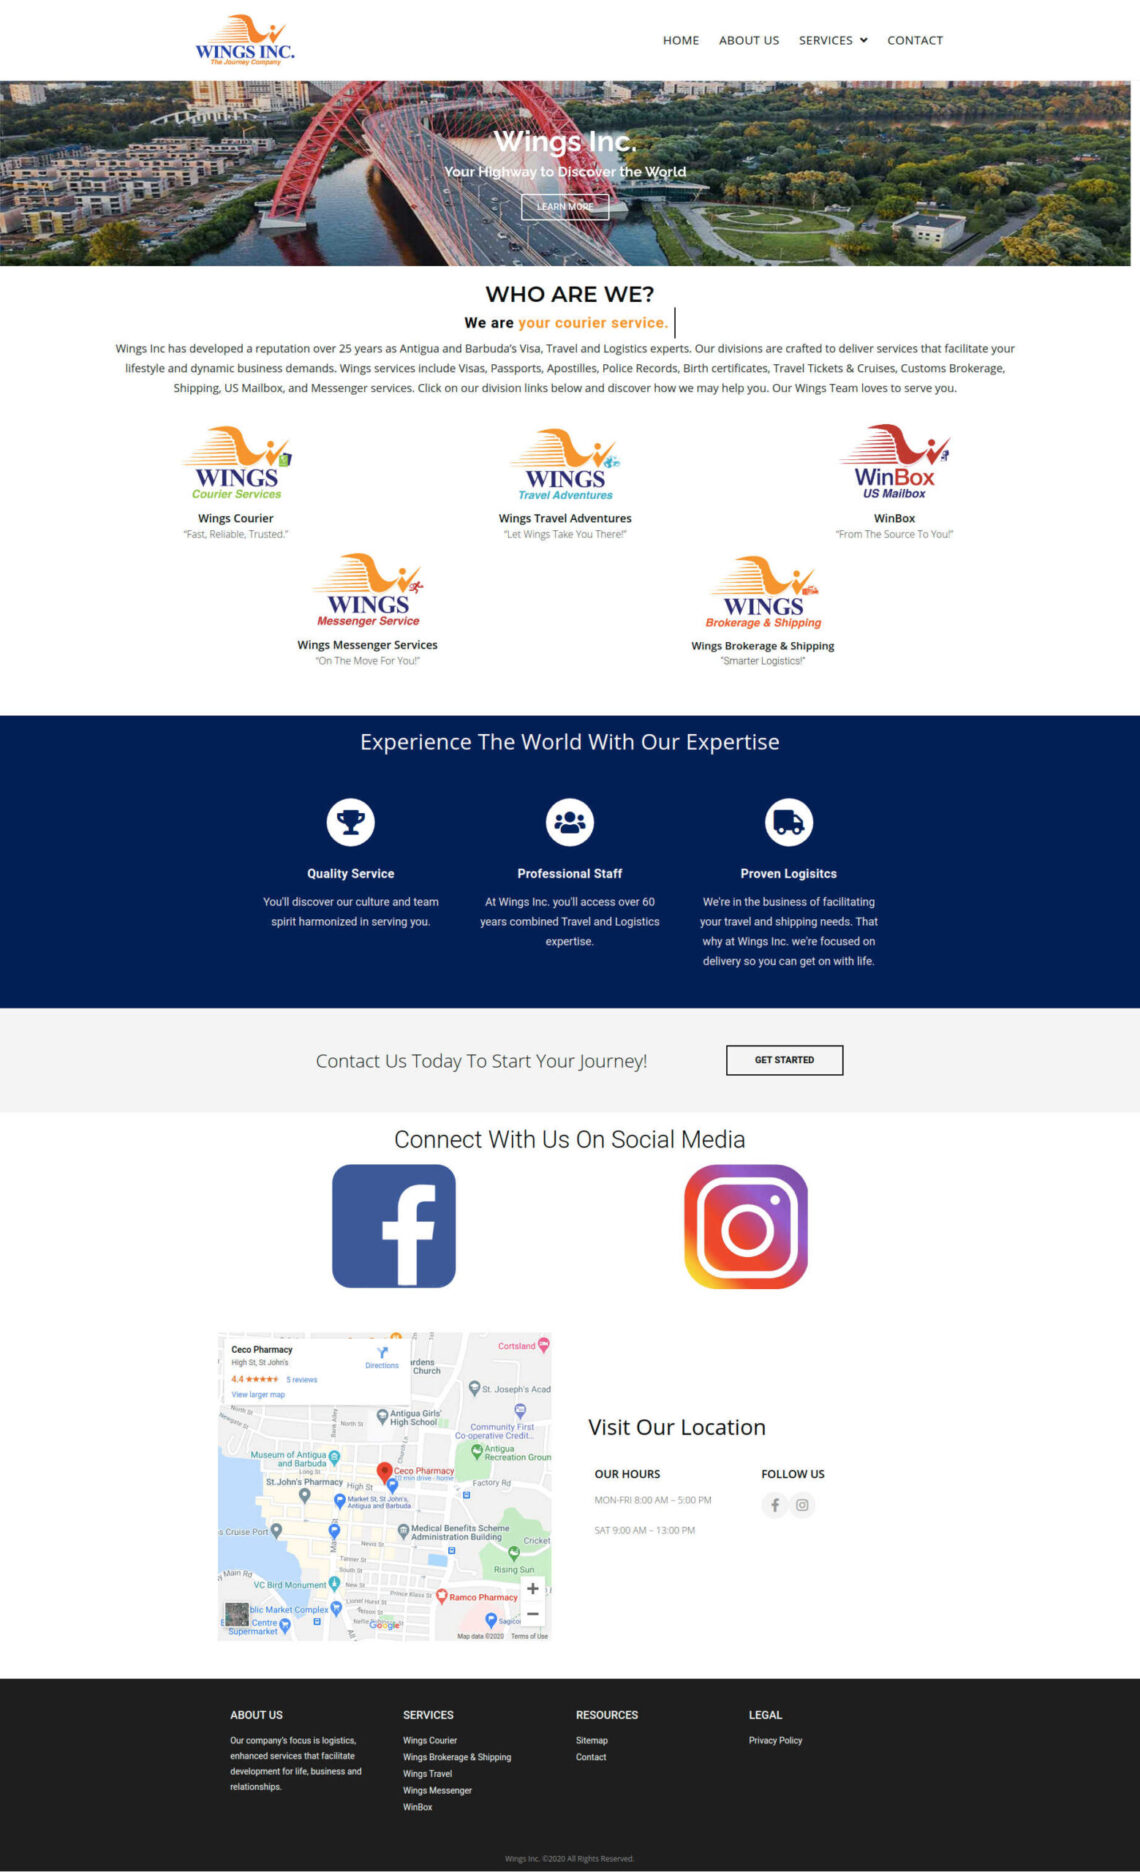 Wings Inc. Antigua Website Design by Anchor Monkey